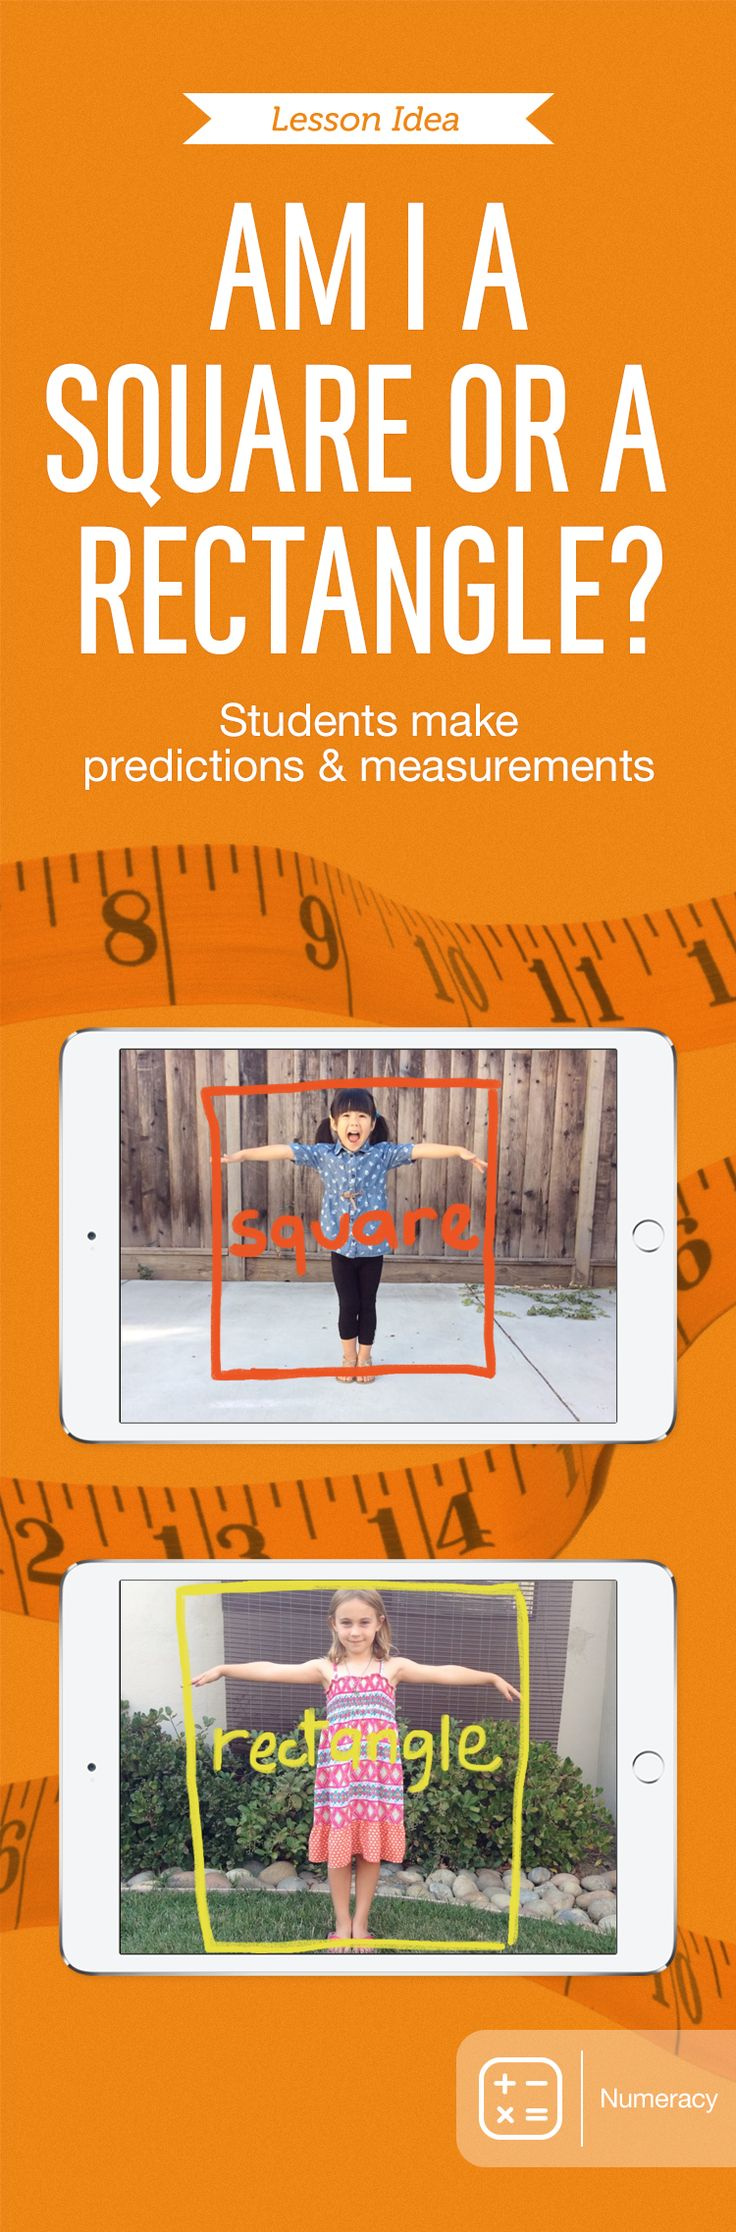 "Kids ages 5 to 6 investigate geometric concepts in ""Are You a Square or a Rectangle?"" Using stop-motion animation, they determine whether their height is equal to, taller, or shorter than their arm spans. After making predictions, they take photos with iPad, create a movie using the Stop Motion Studio app, and share it with the class. For additional lessons, reference this free book: http://apple.co/StopMotionStudio"